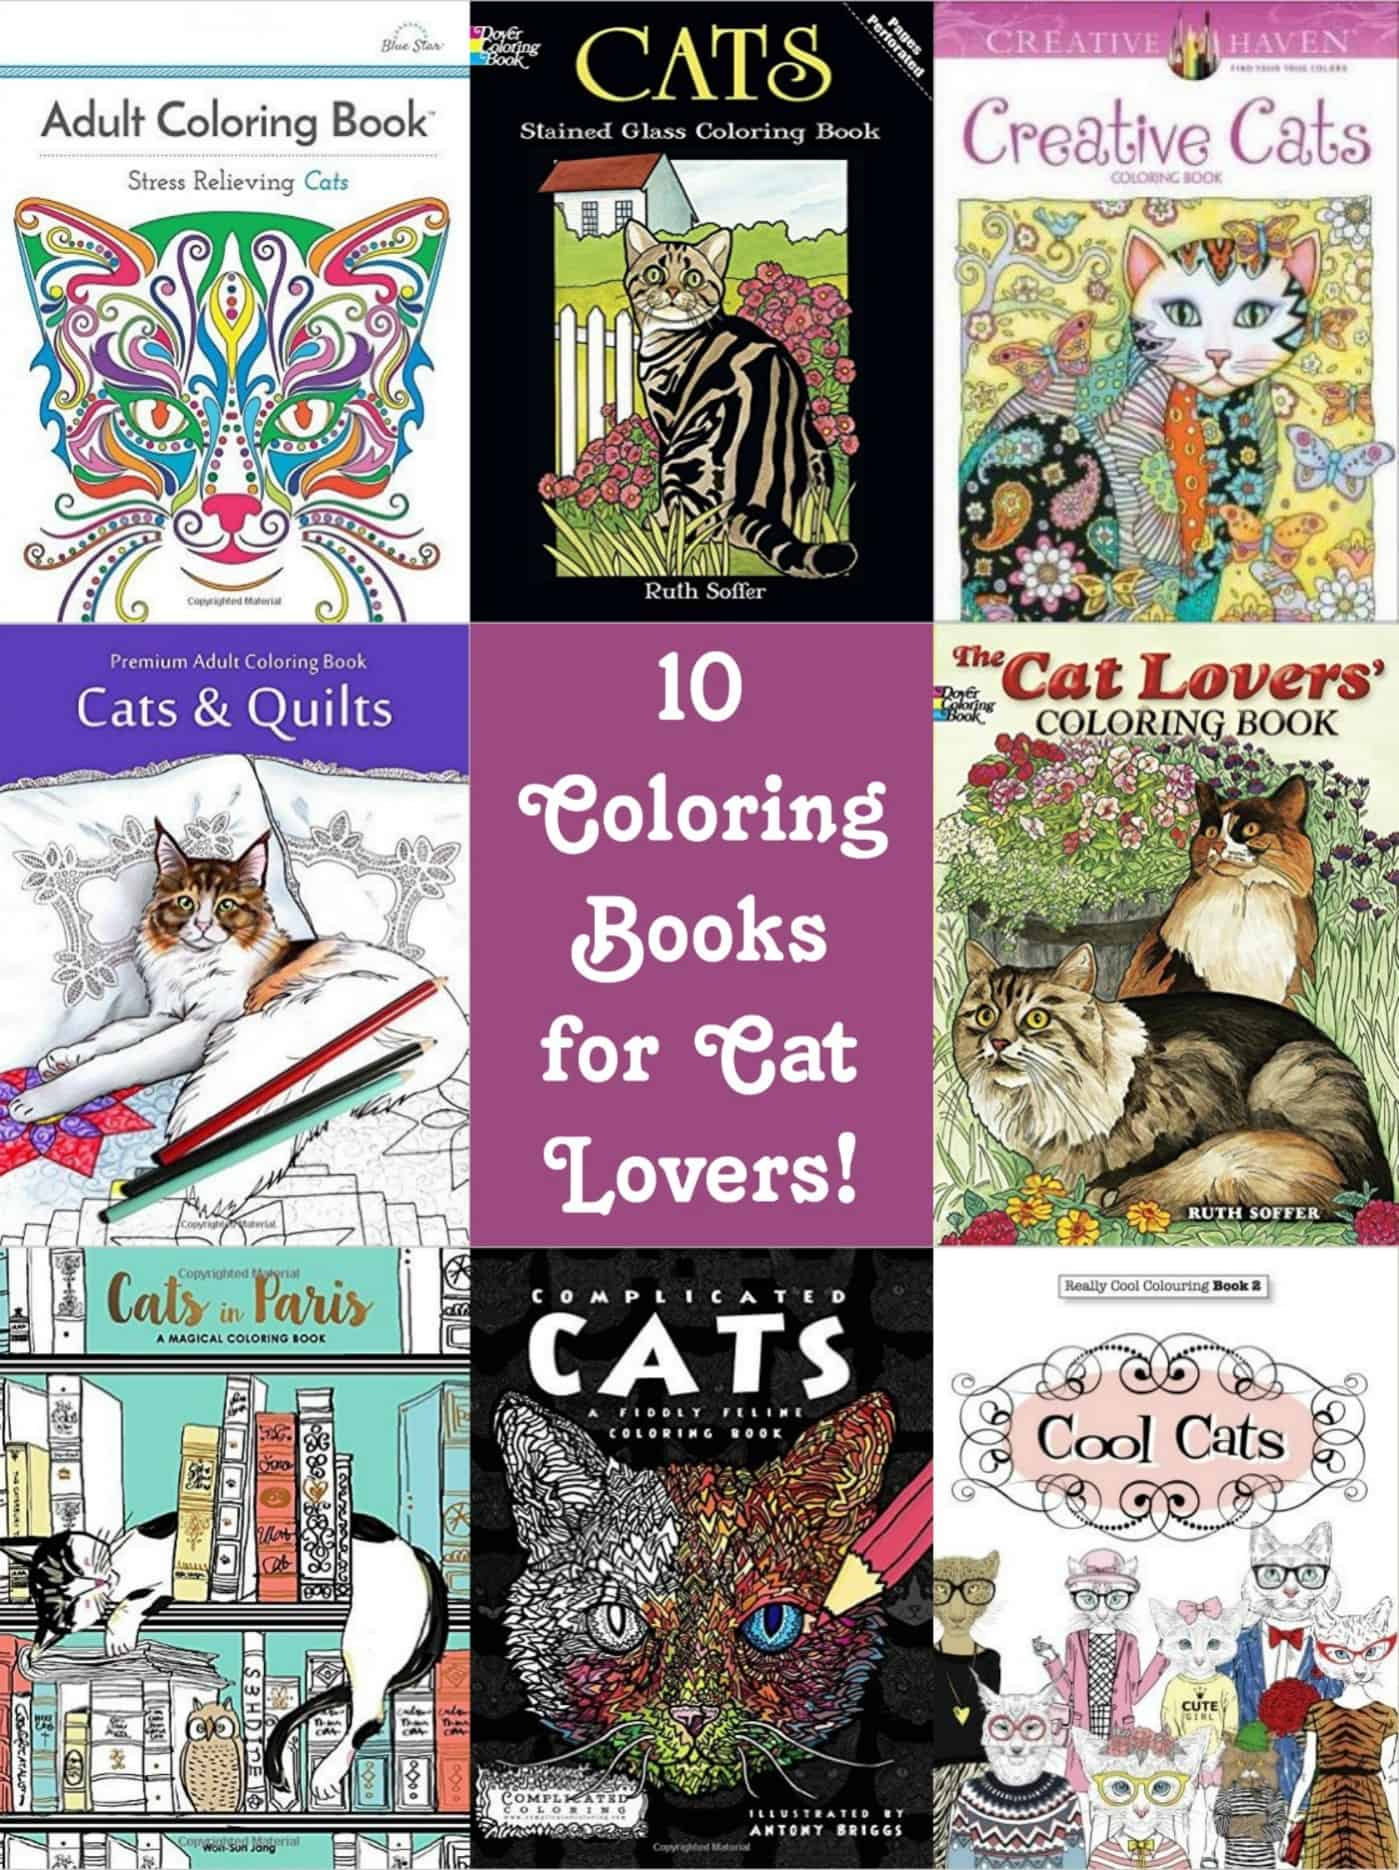 Cat Coloring Books for Feline Lovers - DIY Candy